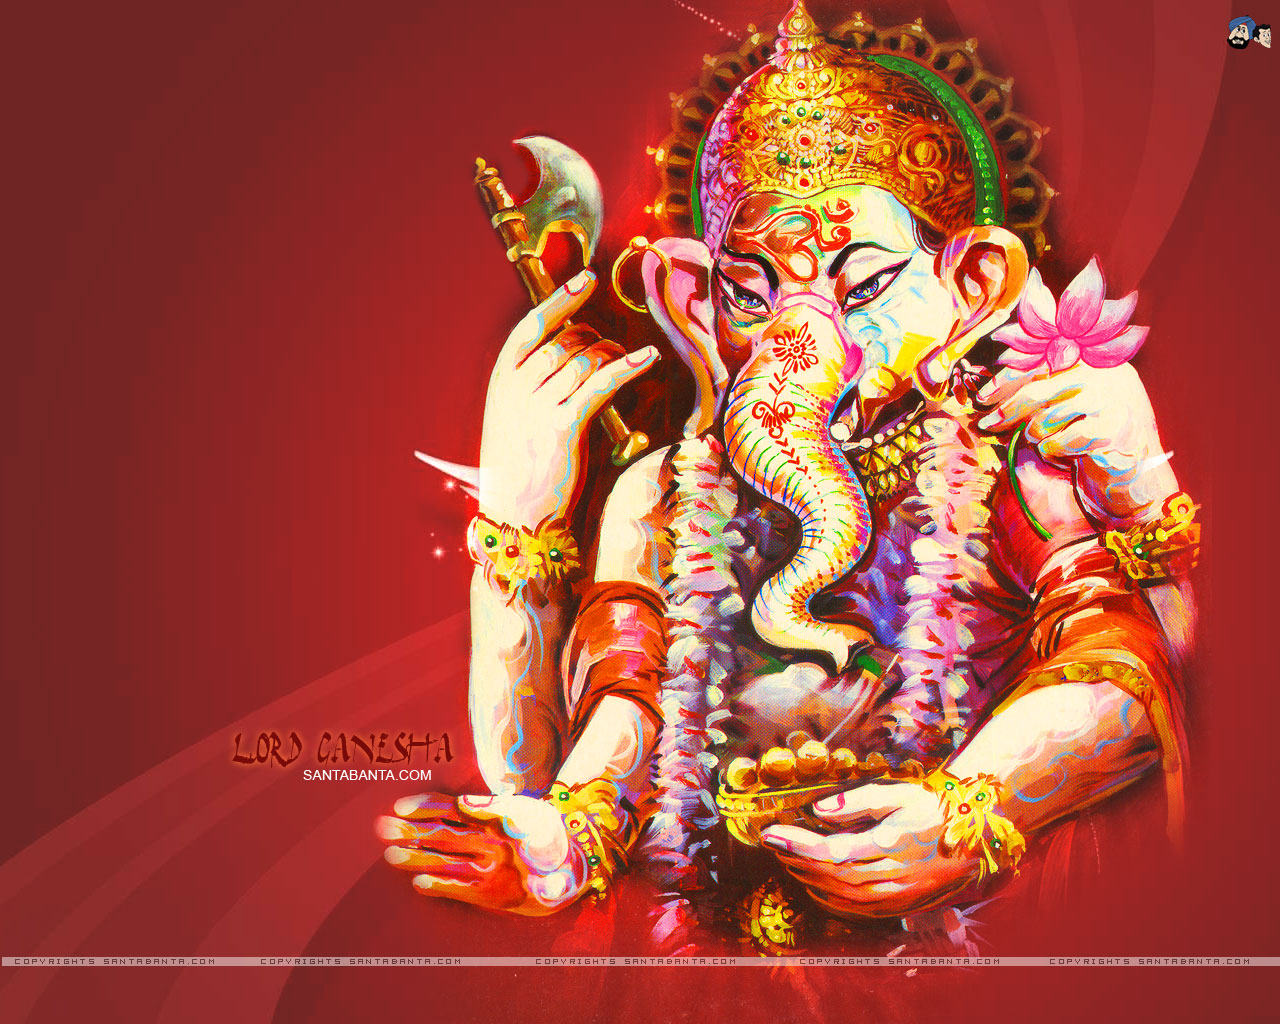 Lord Ganesha Photos: Pictures Of Lord Ganesha Wallpapers